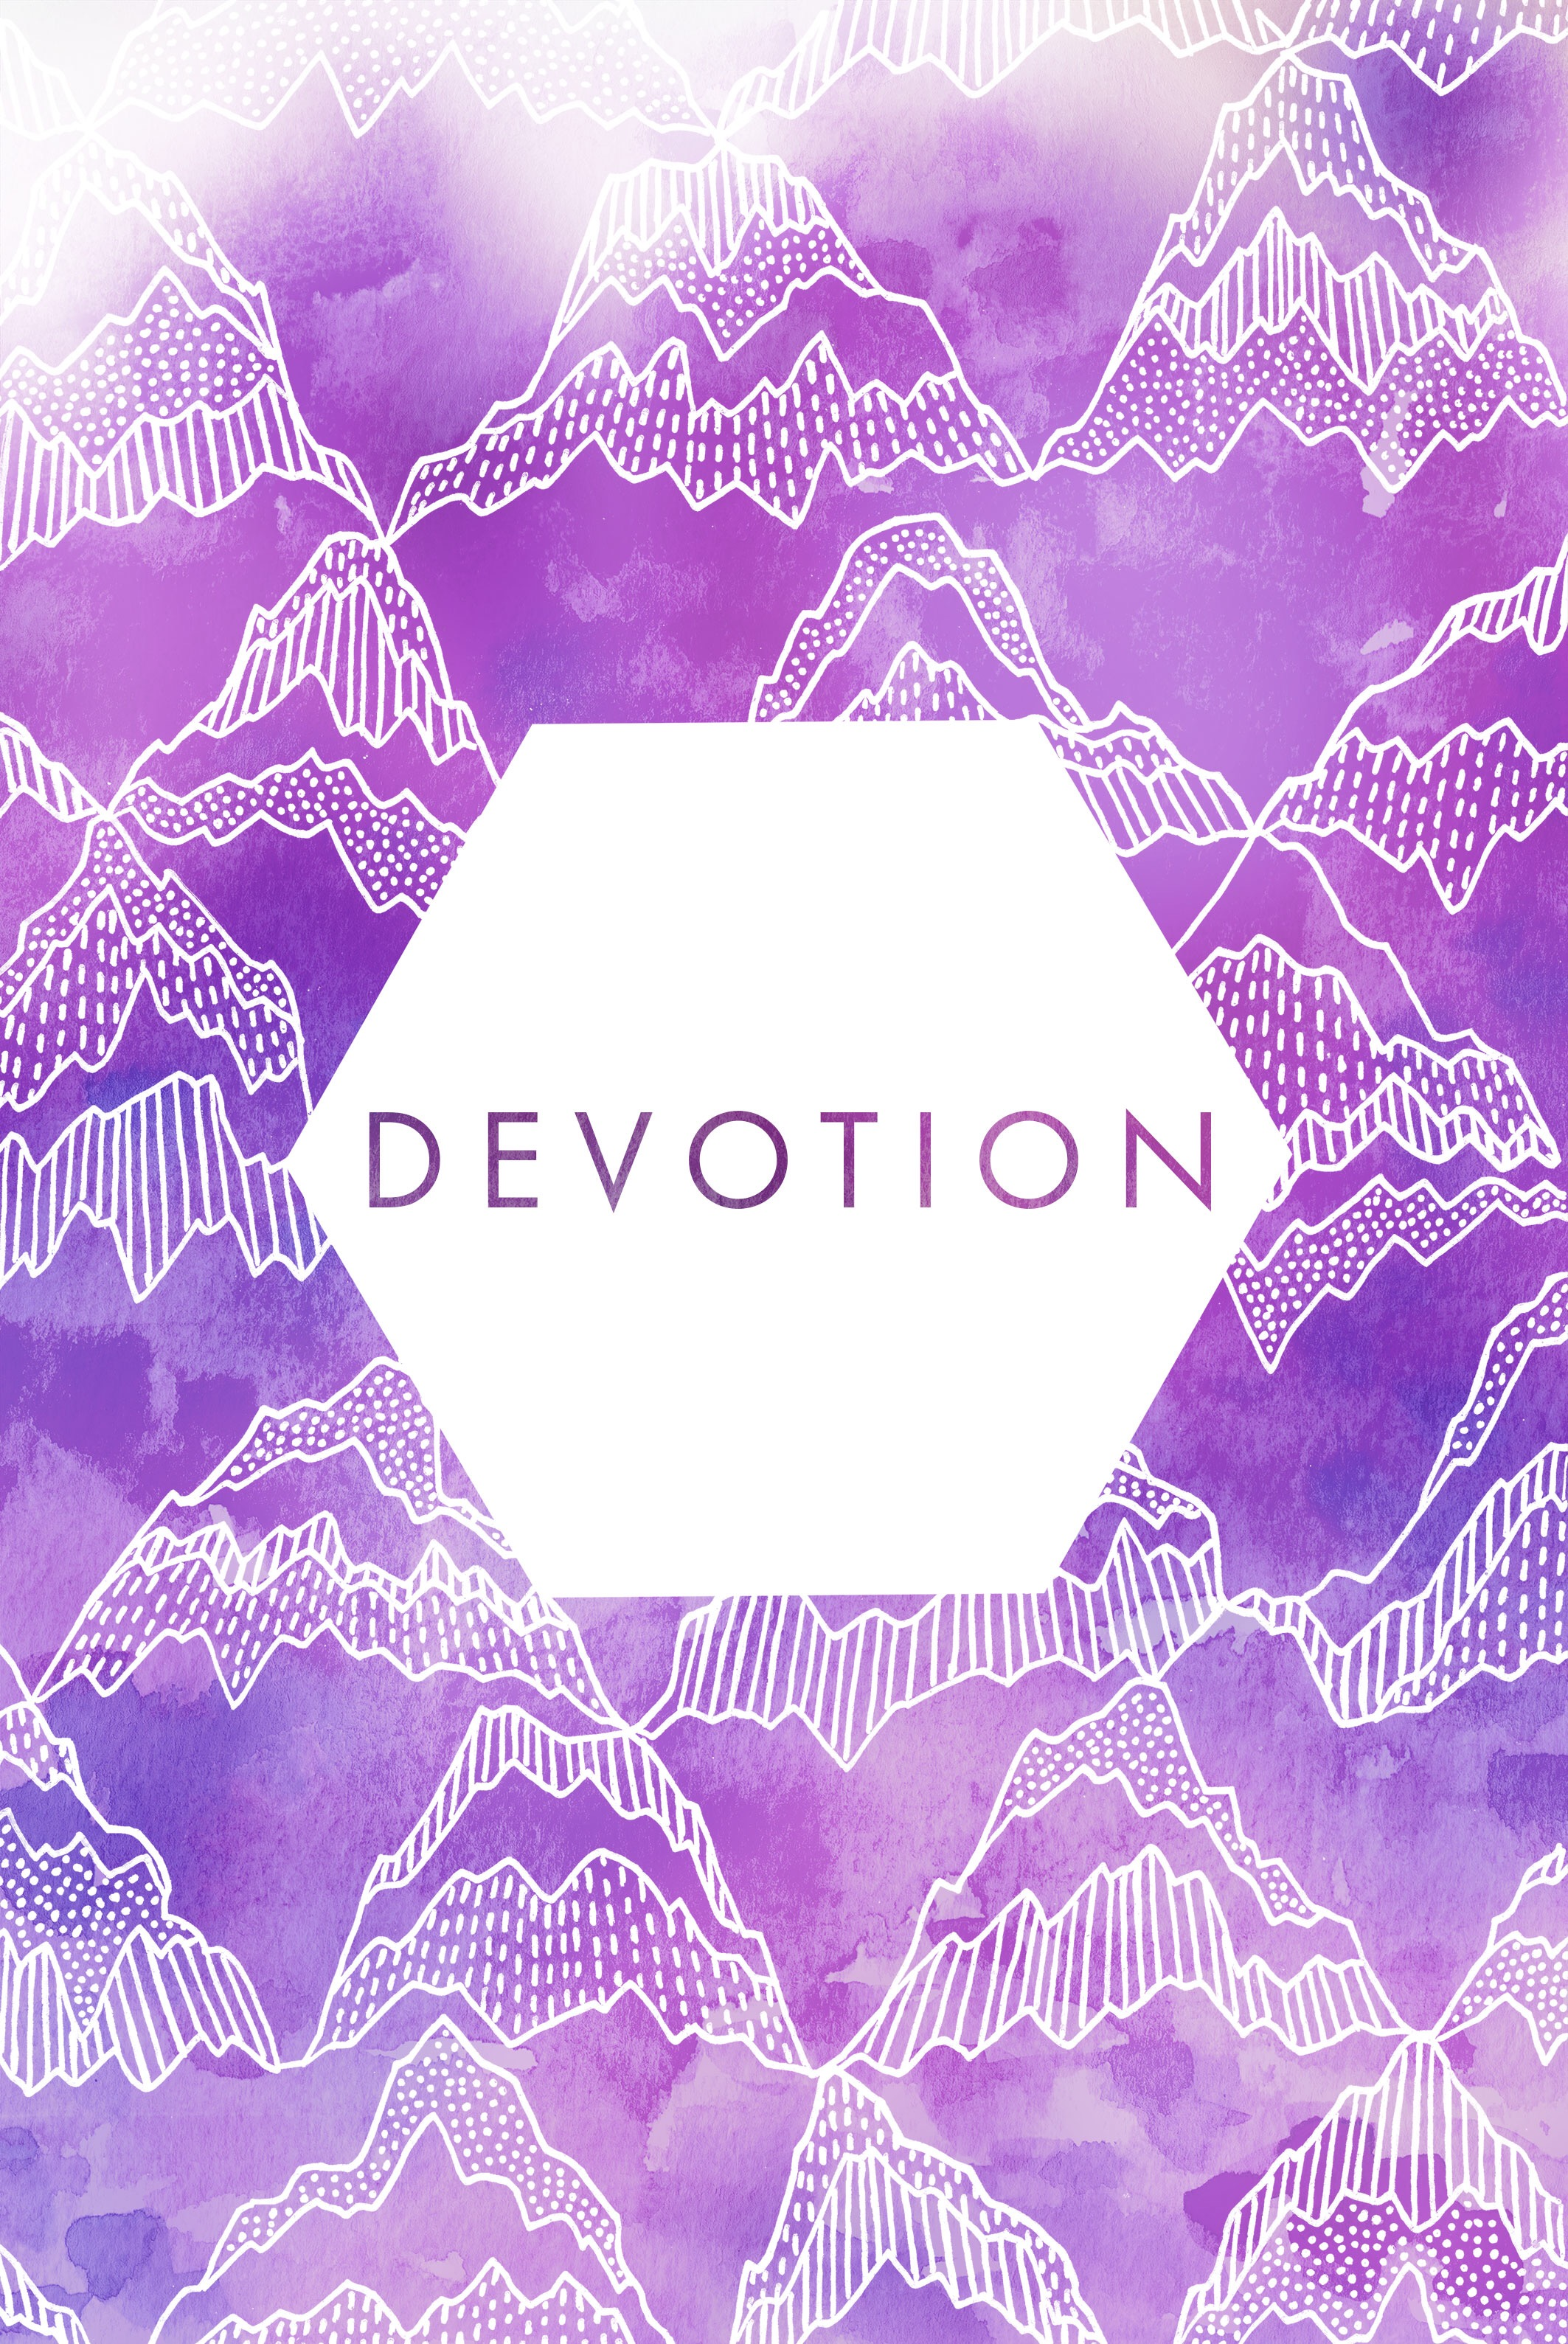 At the beginning of this year I declared that DEVOTION was going to be my guiding word for this year. Since then I've learnt so much more about devotion, what it really means to me and what it really involves. So here are some of my thoughts and musings on devotion... http://oneinfinitelife.com/musings-on-devotion/